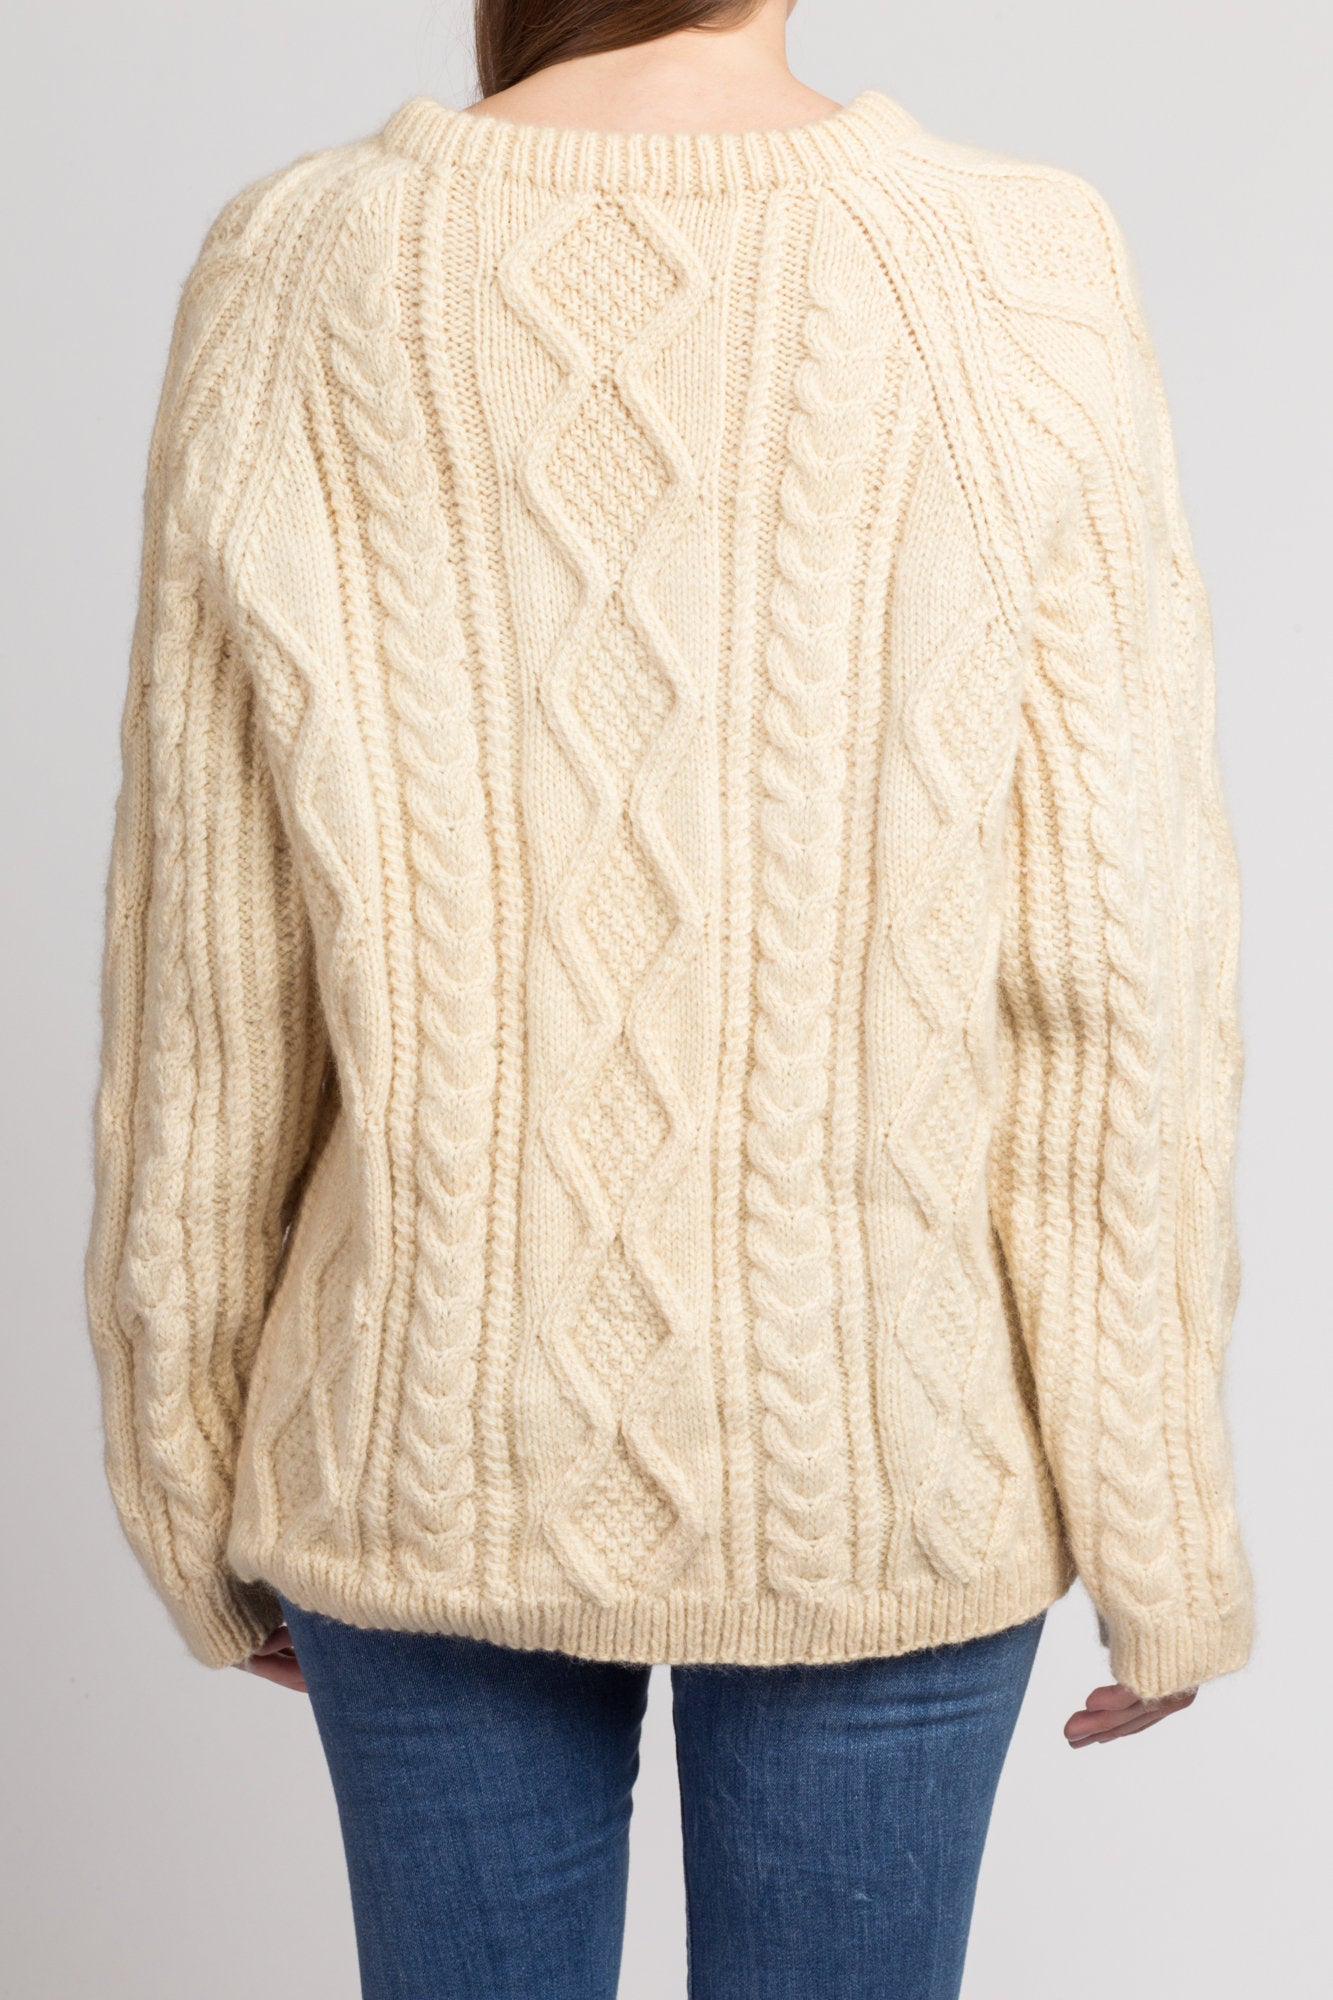 Vintage Cable Knit Fisherman Sweater - Men's Large